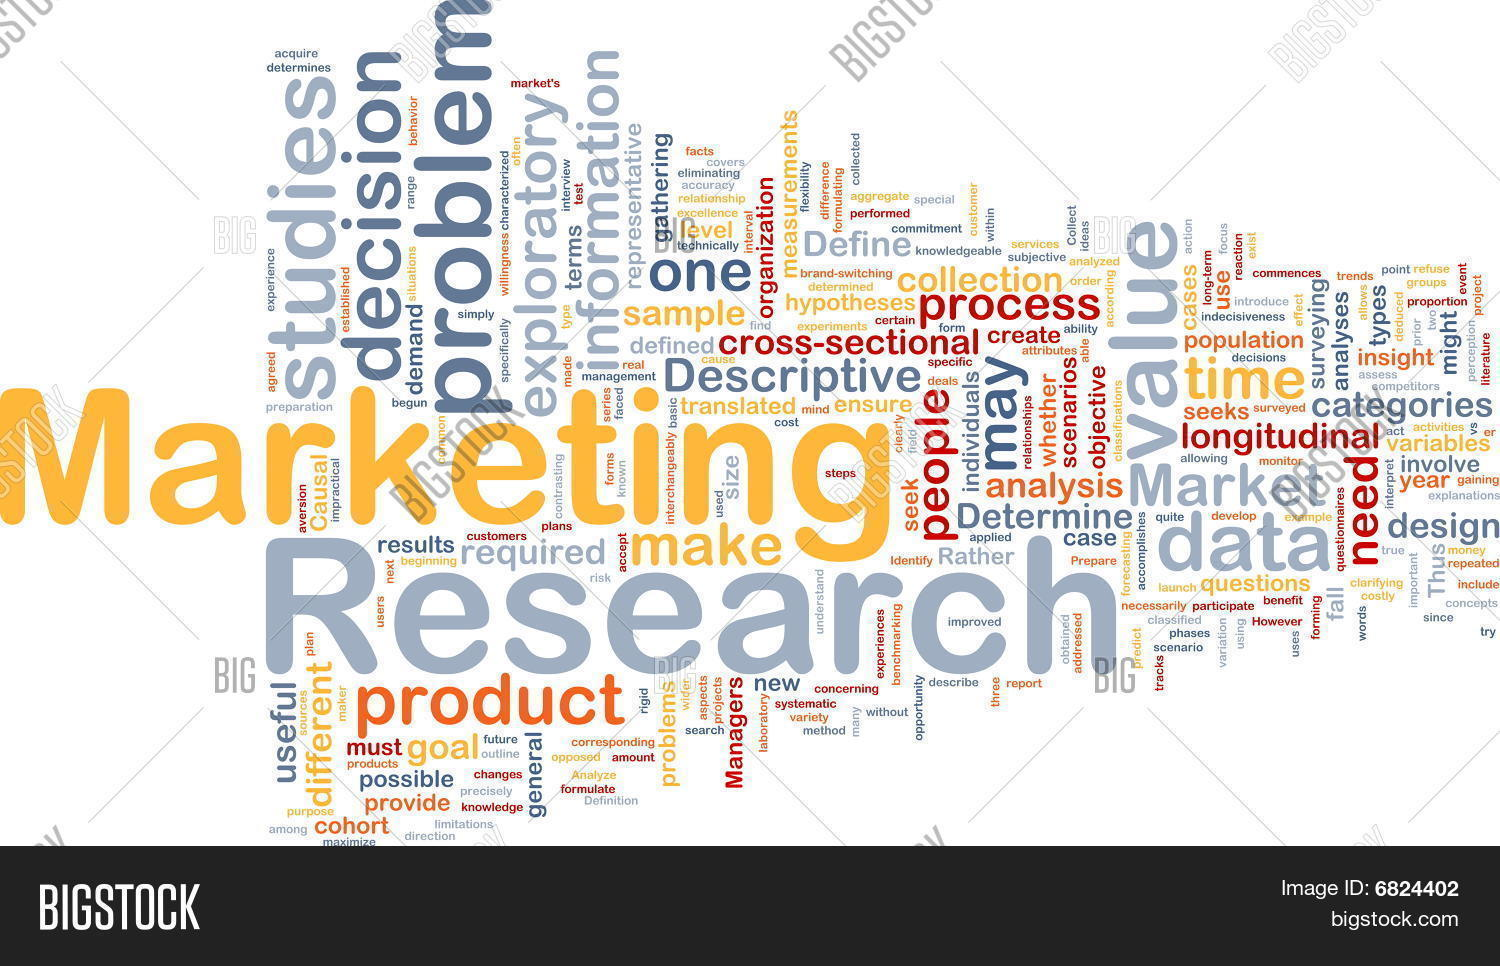 marketing research abstract Table of contents unit lesson title page no i 11 marketing research and decision 3 12 marketing research process 16 13 research design 31 14 marketing information system 46.